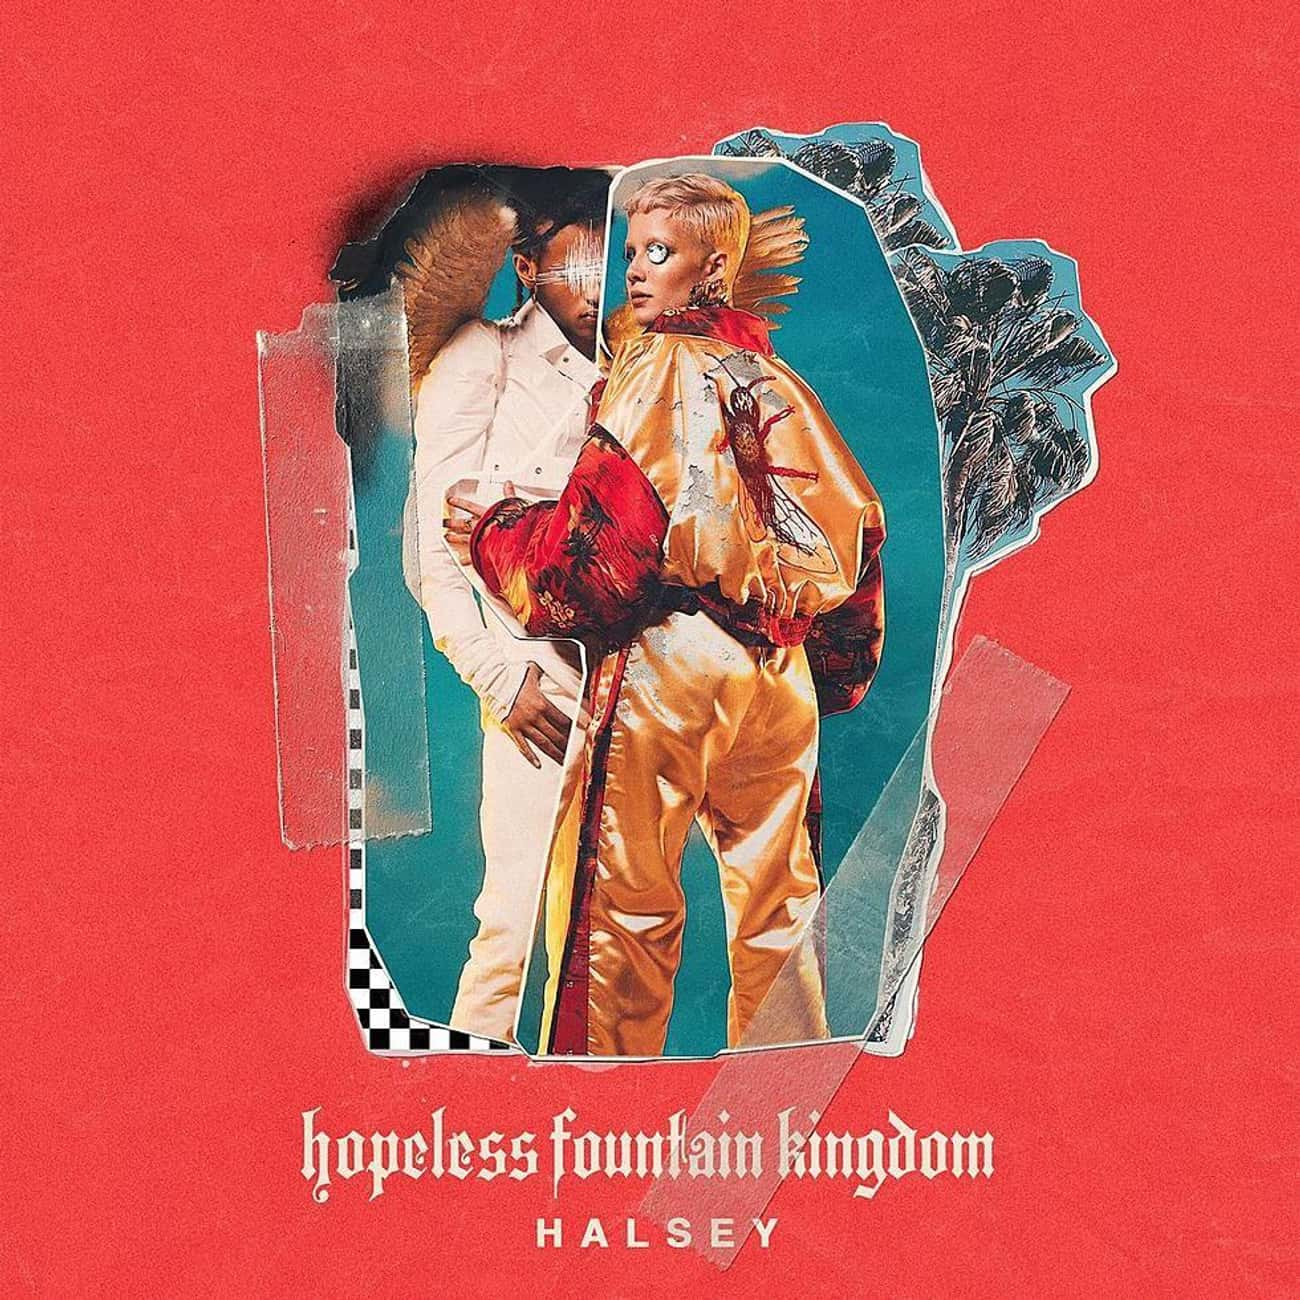 Hopeless Fountain Kingdom is listed (or ranked) 2 on the list Every Halsey Album, Ranked